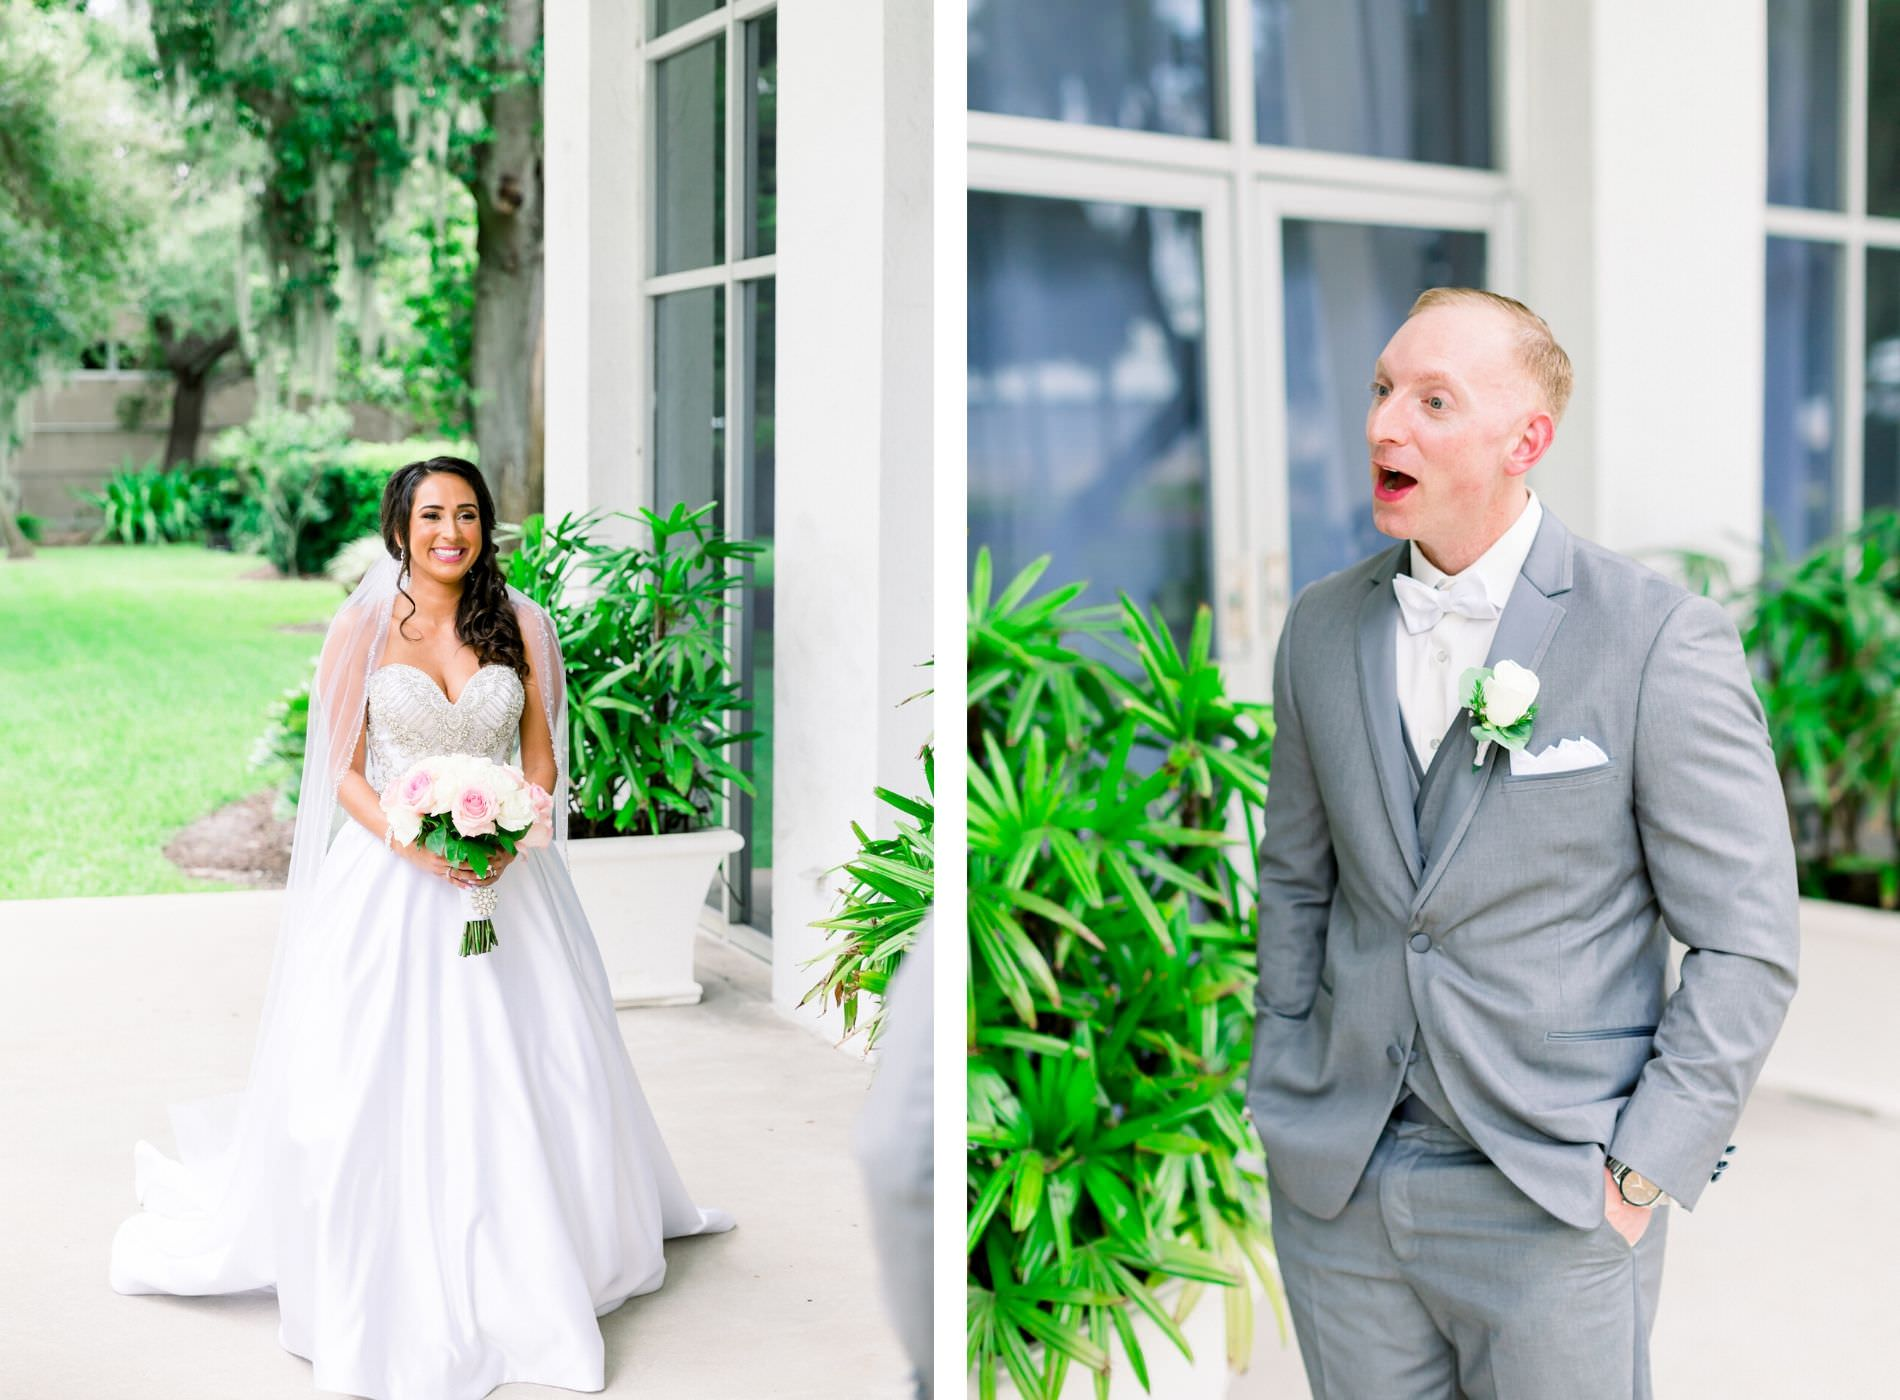 Bride in Romantic Strapless Sweetheart and Rhinestone Bodice Ballgown Skirt Wedding Dress Holding White and Pink Roses Floral Bouquet, Groom in Gray Suit Reaction to First Look Portrait | Tampa Wedding Photographer Shauna and Jordon Photography | Wedding Venue Tampa Garden Club | Wedding Dress Truly Forever Bridal